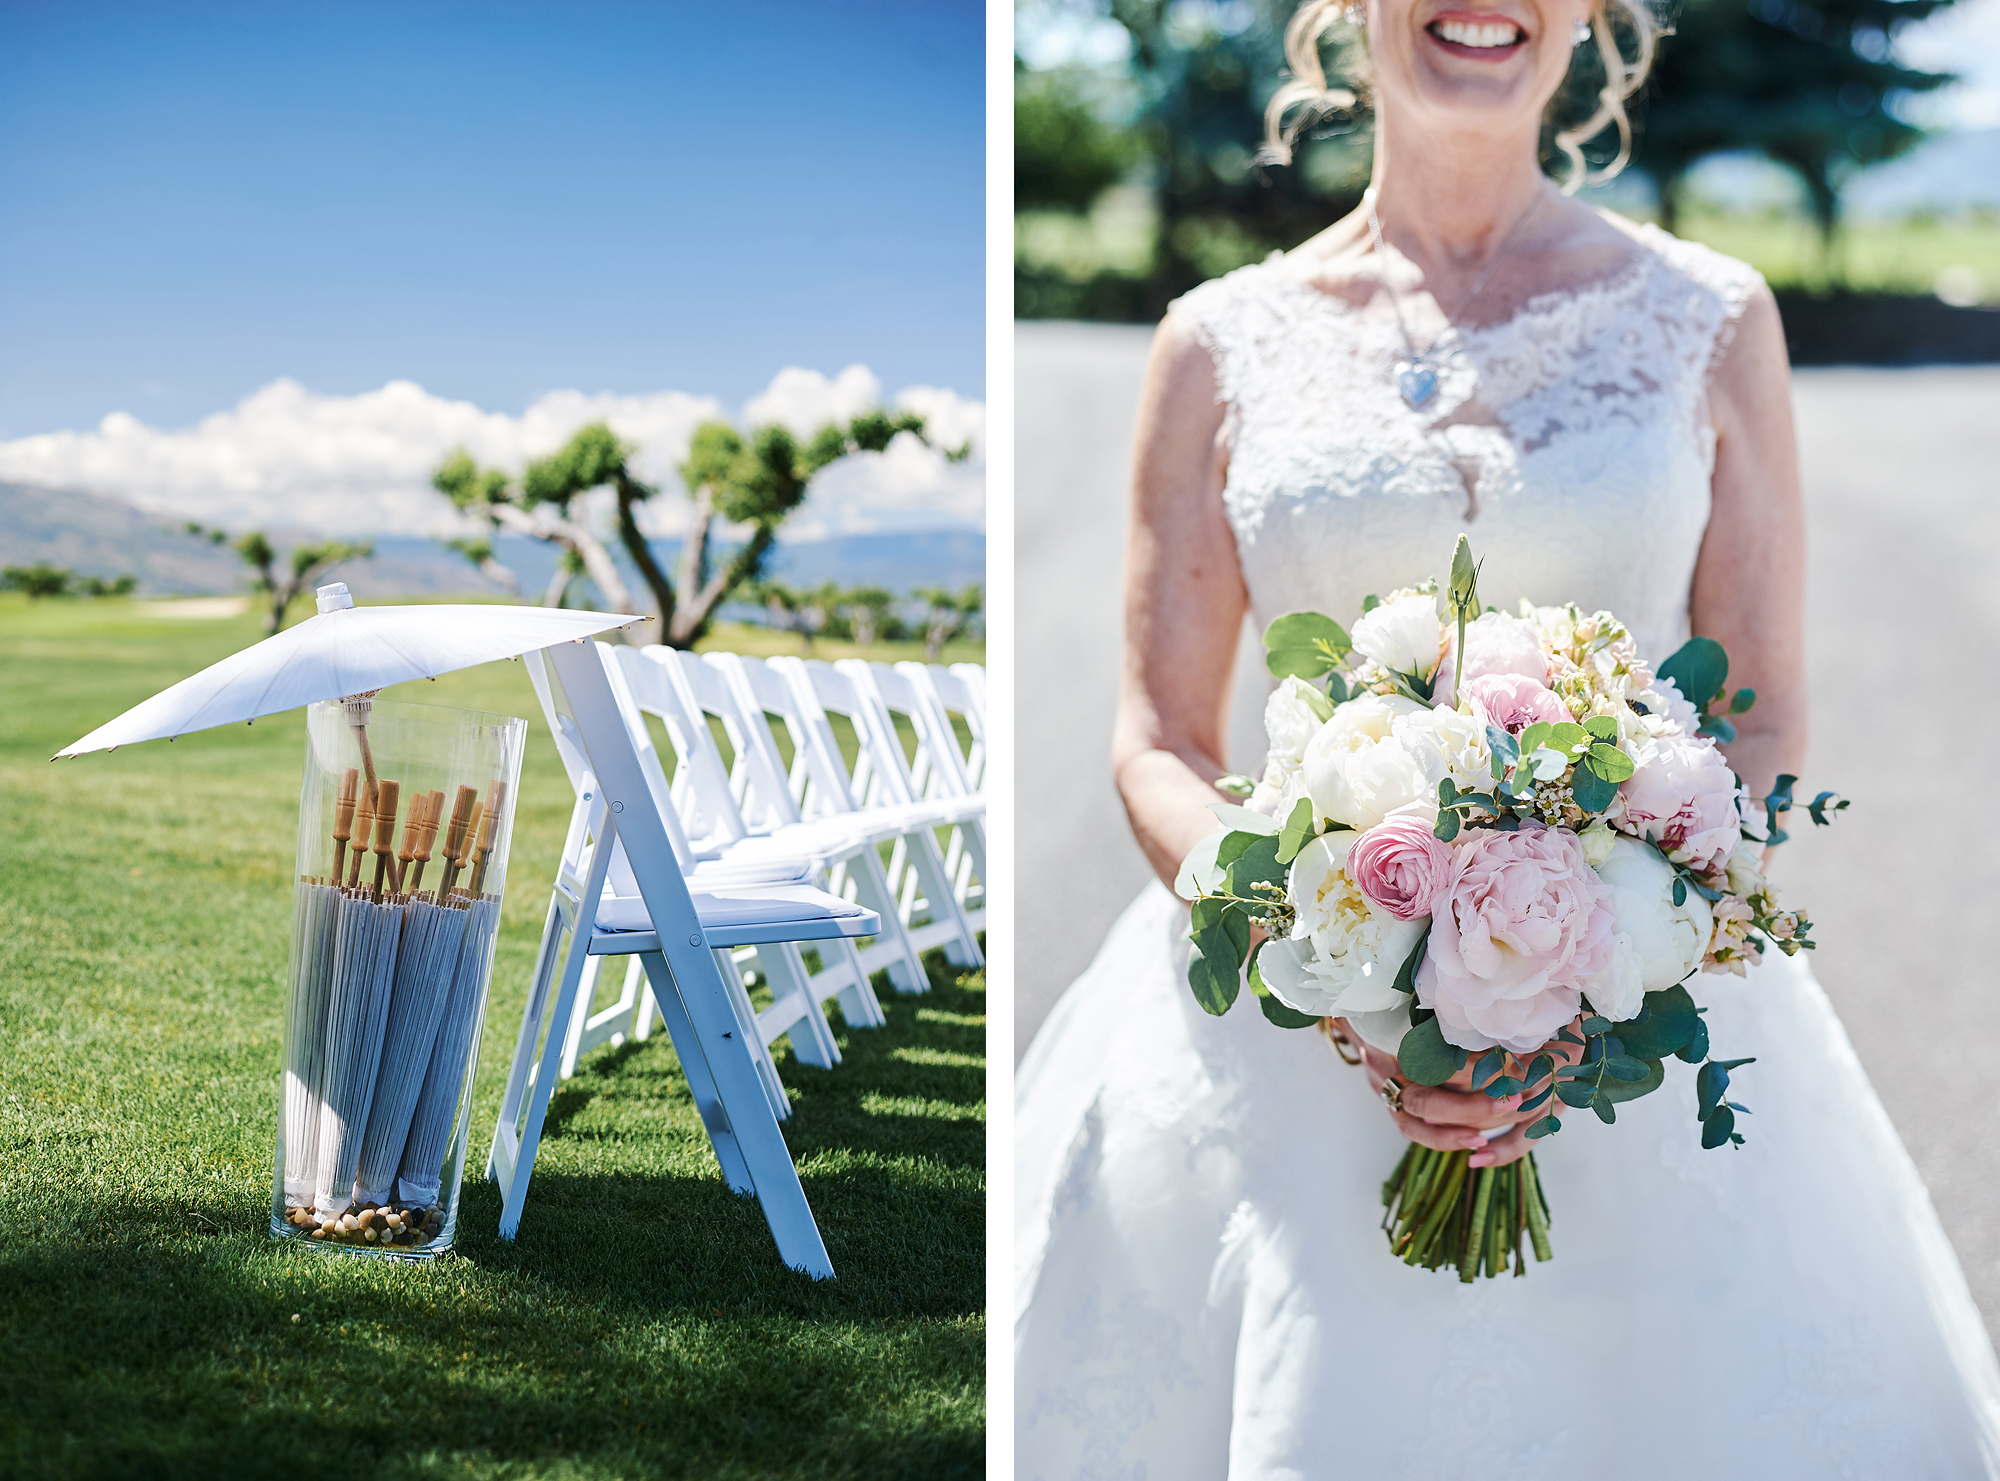 Sun shades and the bridal bouquet